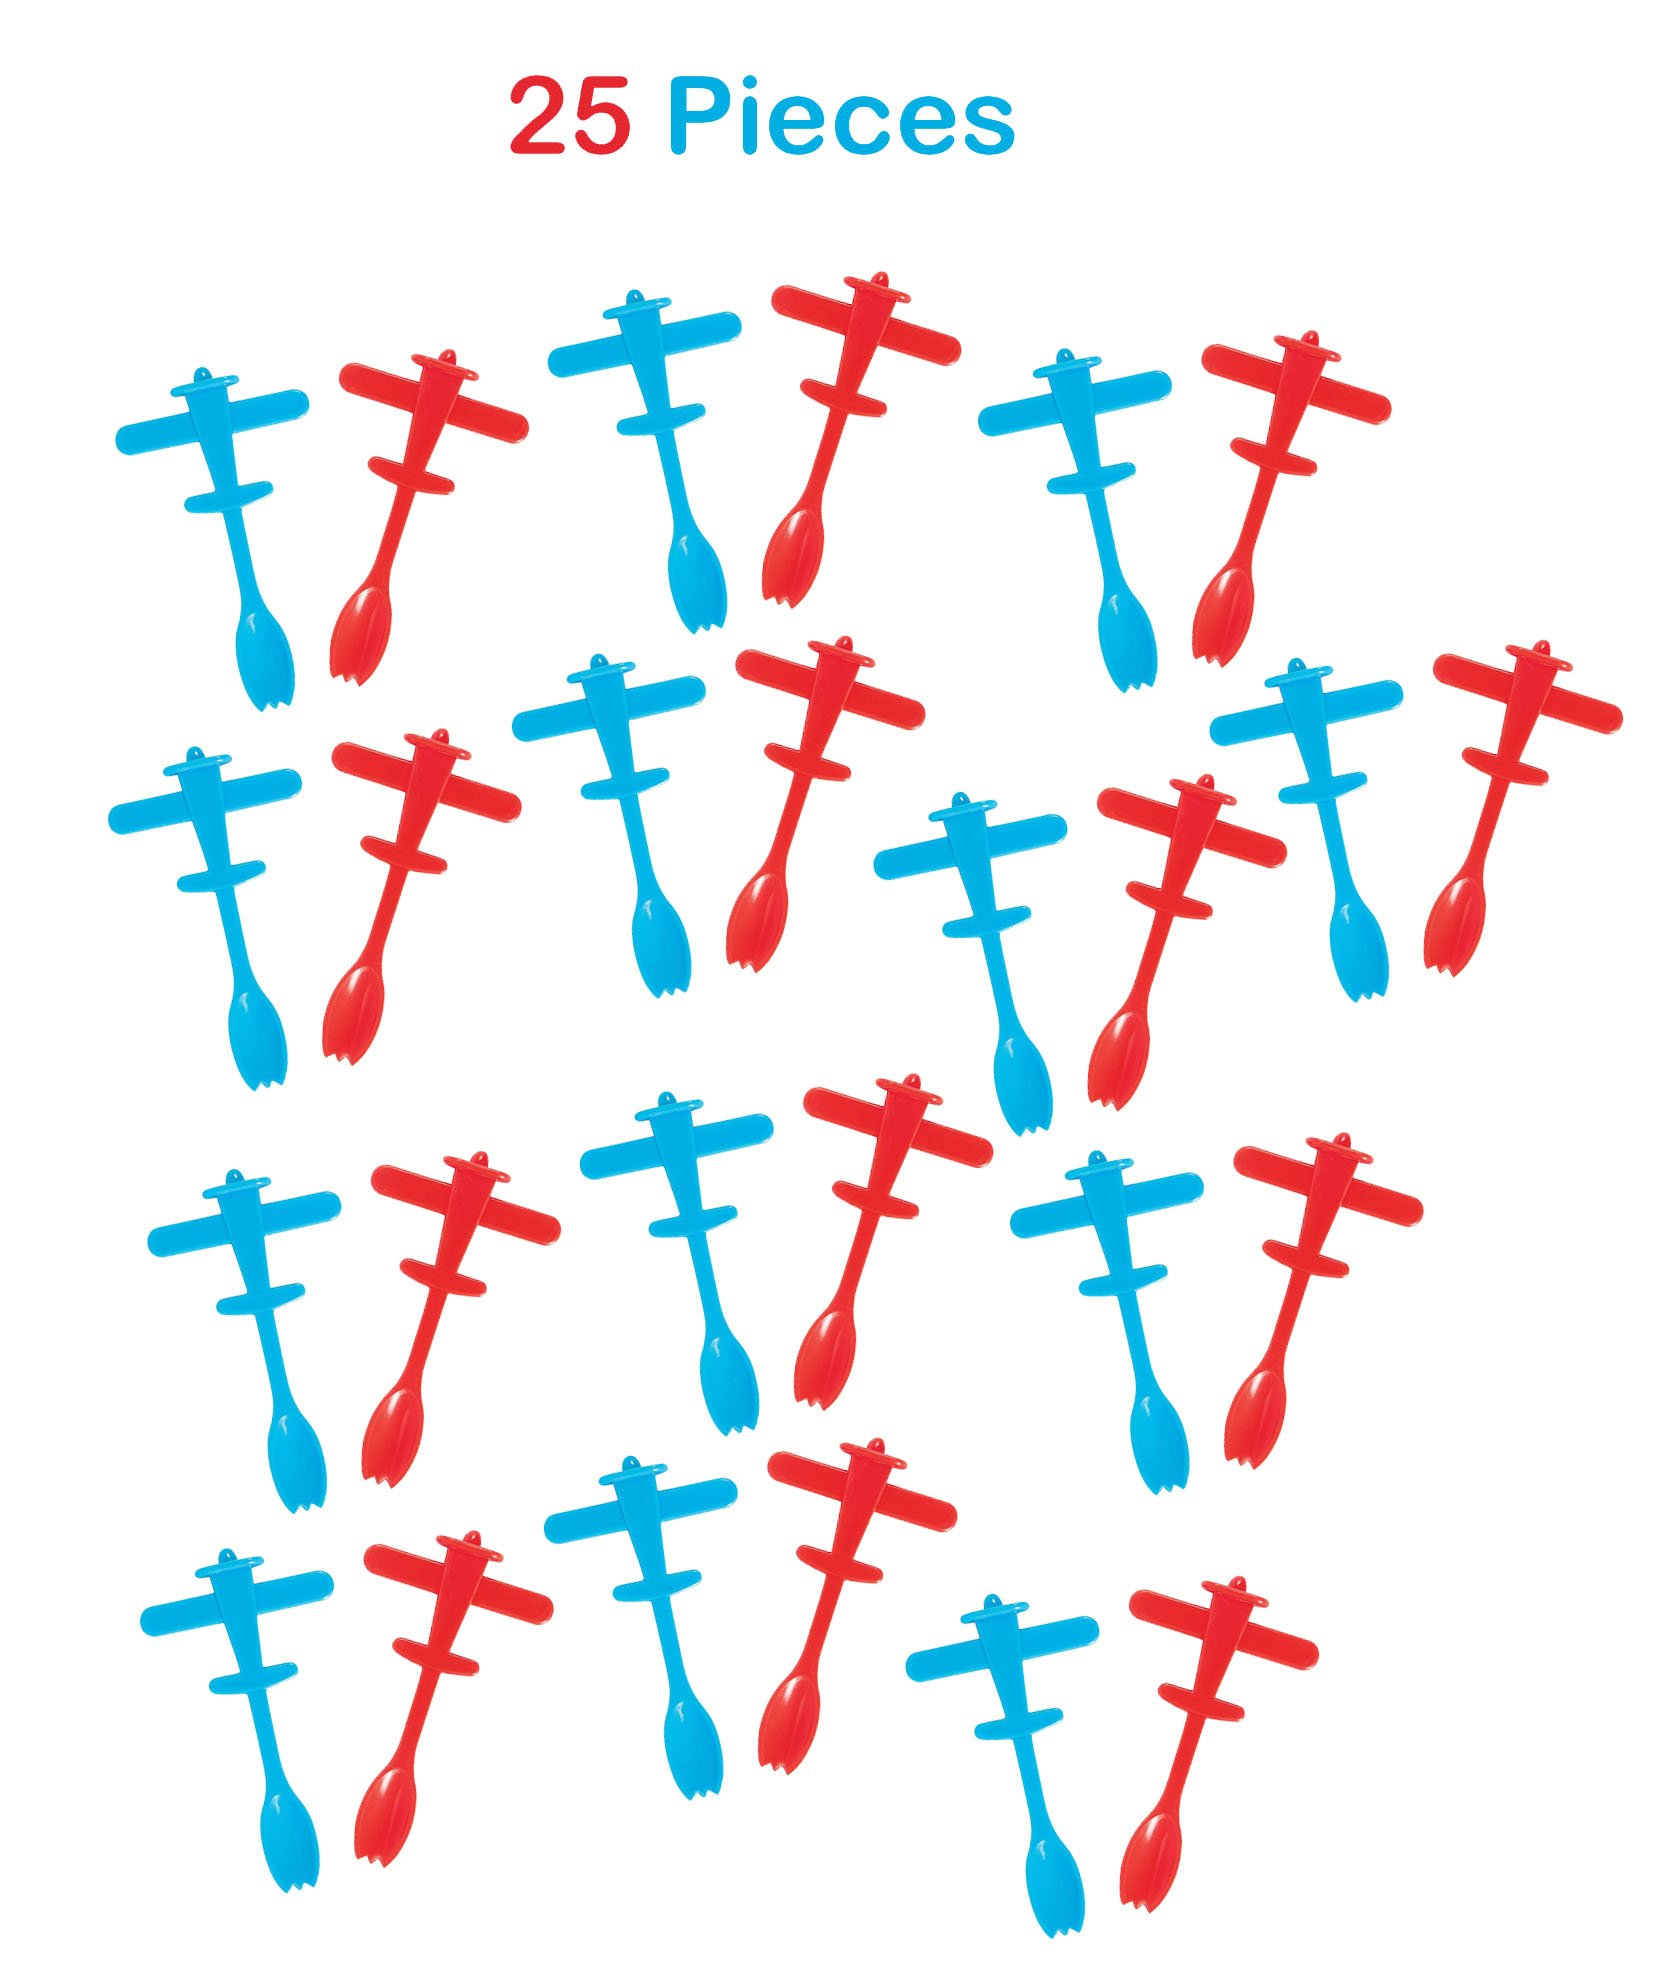 Plastic Airplane Cupcake Toppers With Spoon 3.75 Inches - 25 Pieces – Cute Blue And Red Airplane Cupcake Picks – For Airplane Themed Parties, Birthdays, Decorations, Supplies - By Kidsco